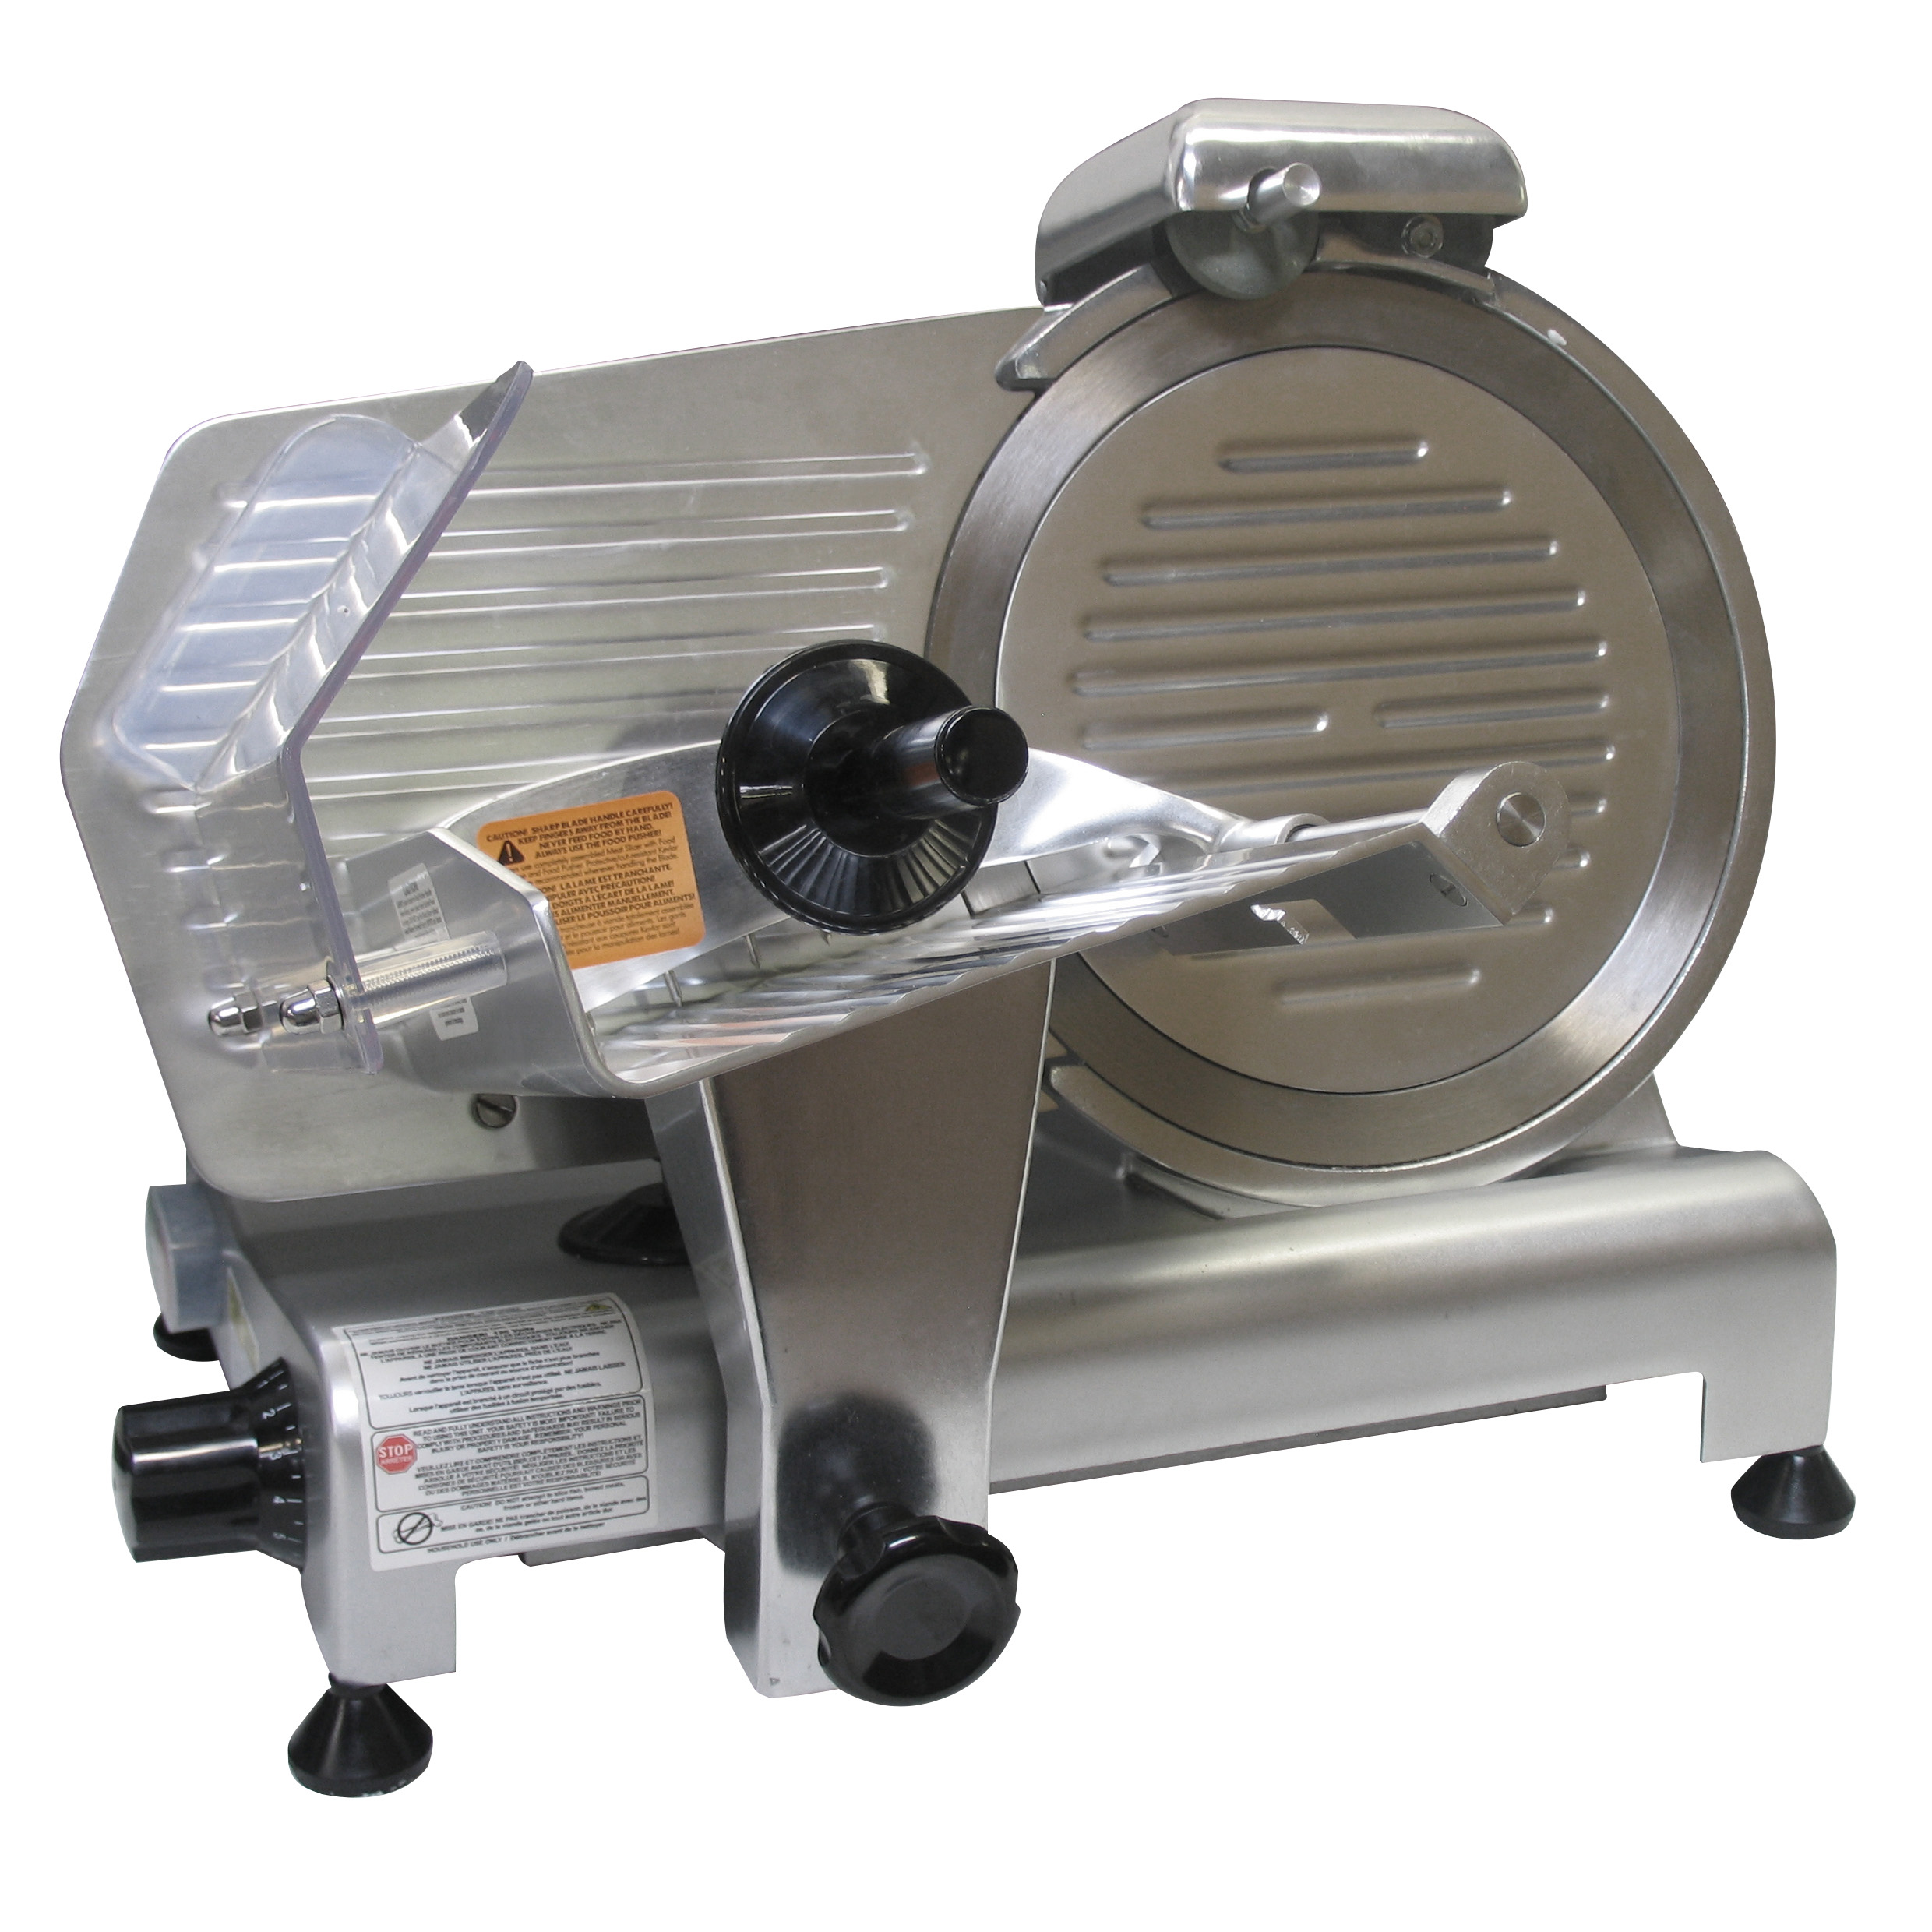 Hamilton Beach 83-0850-W food slicer, electric